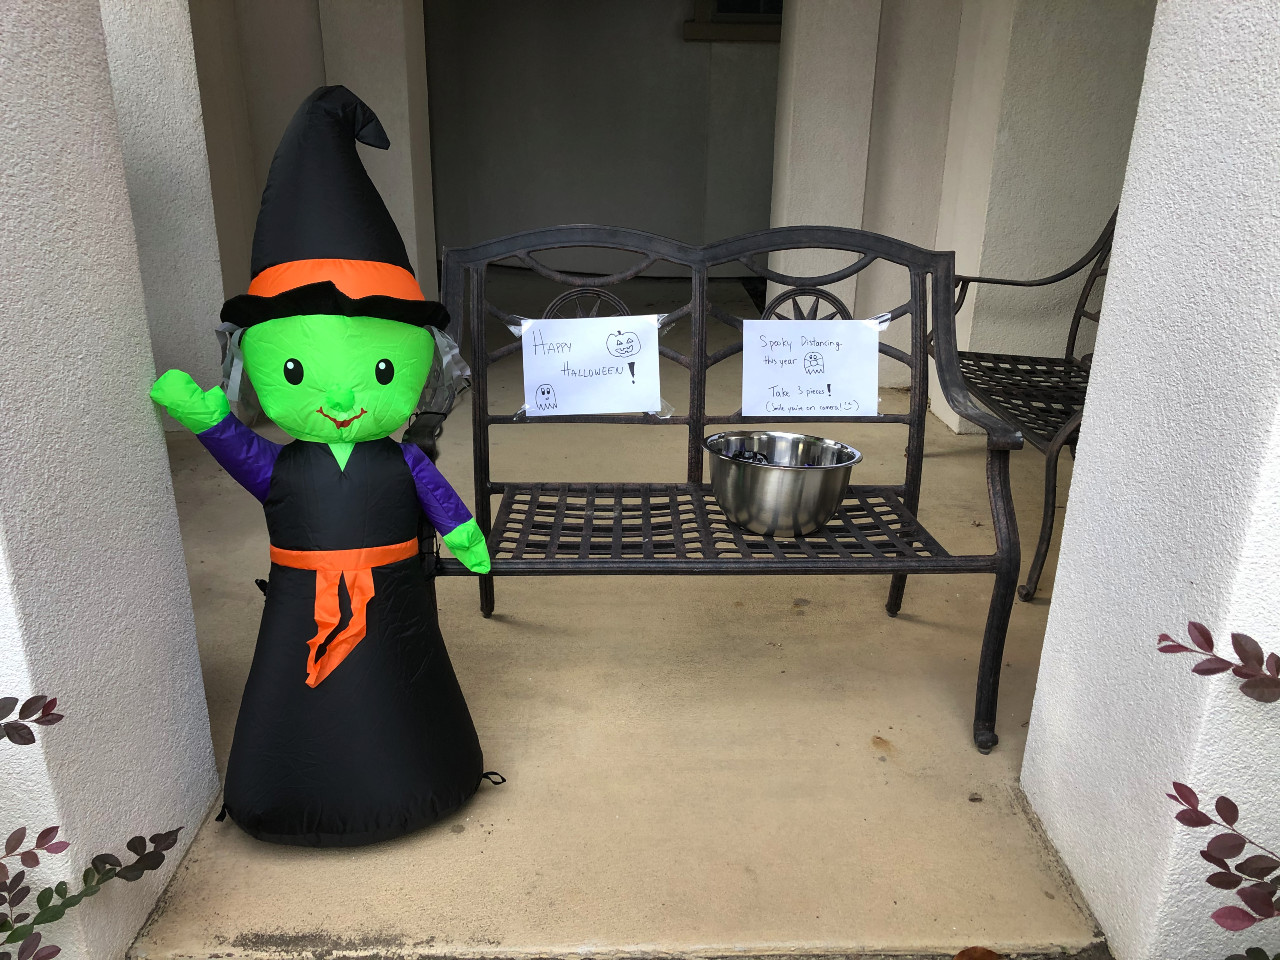 Our Halloween self-serve station